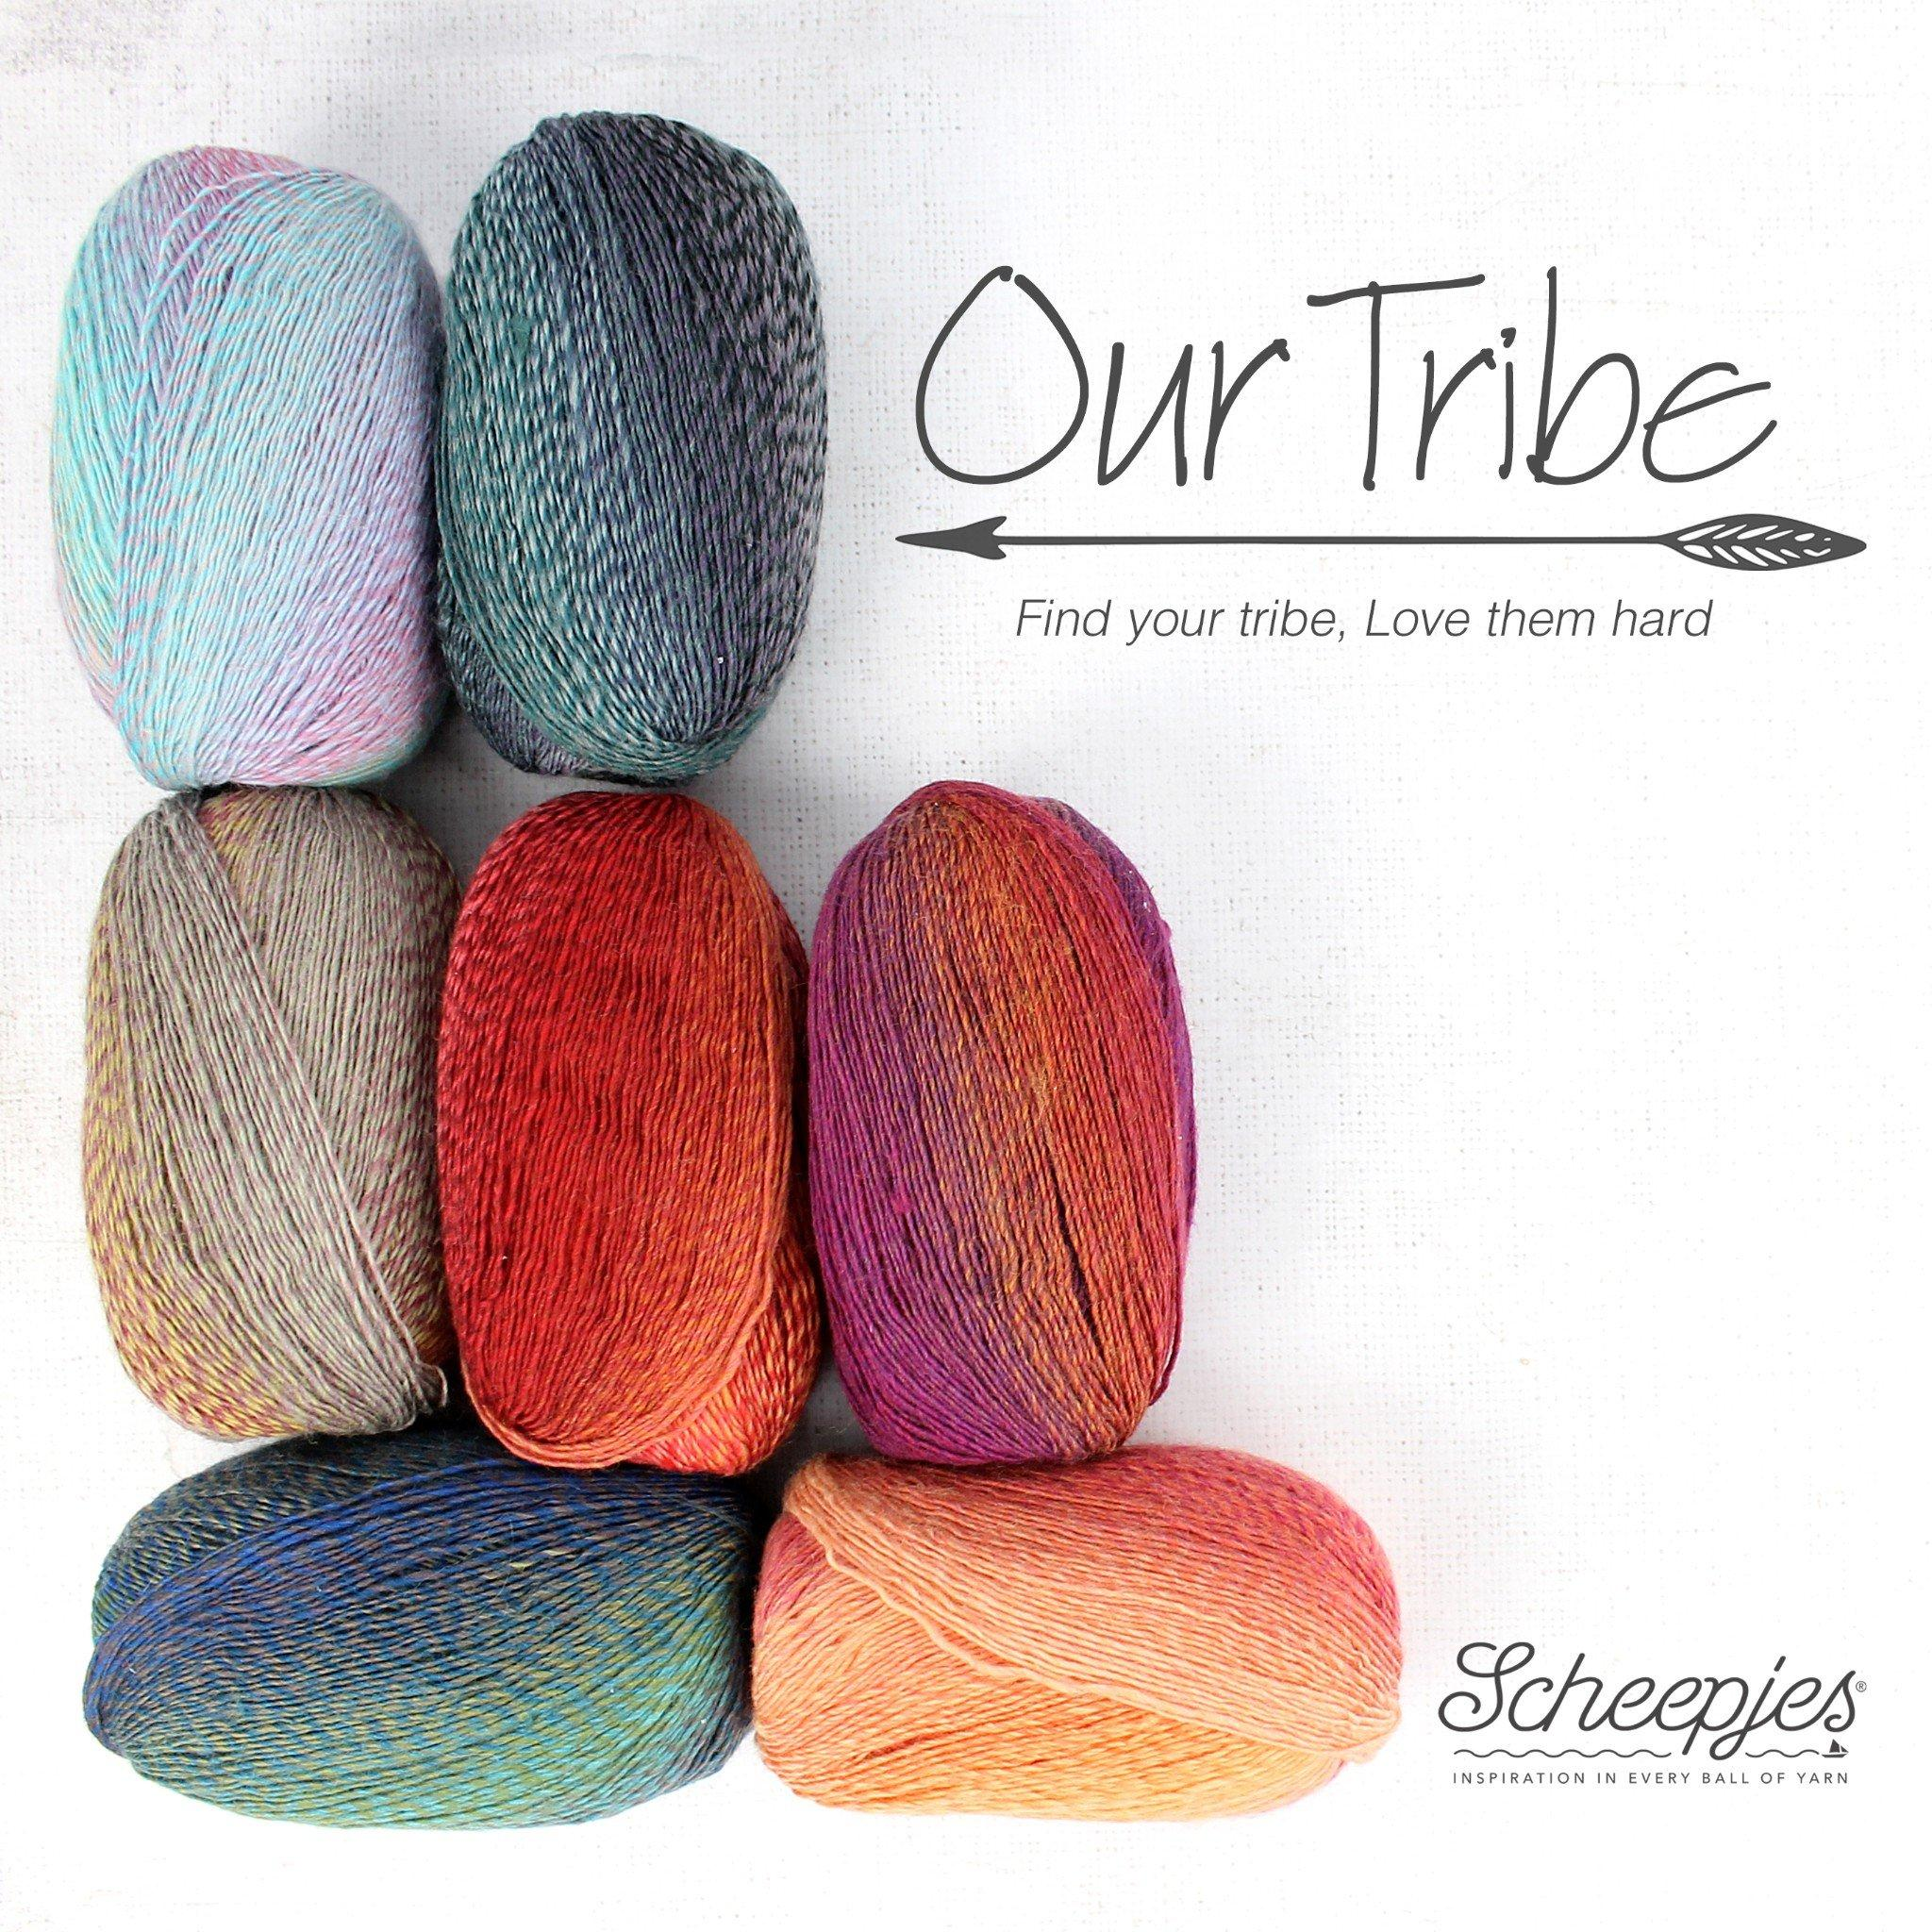 Scheepjes Our Tribe - Cypress textiles 970